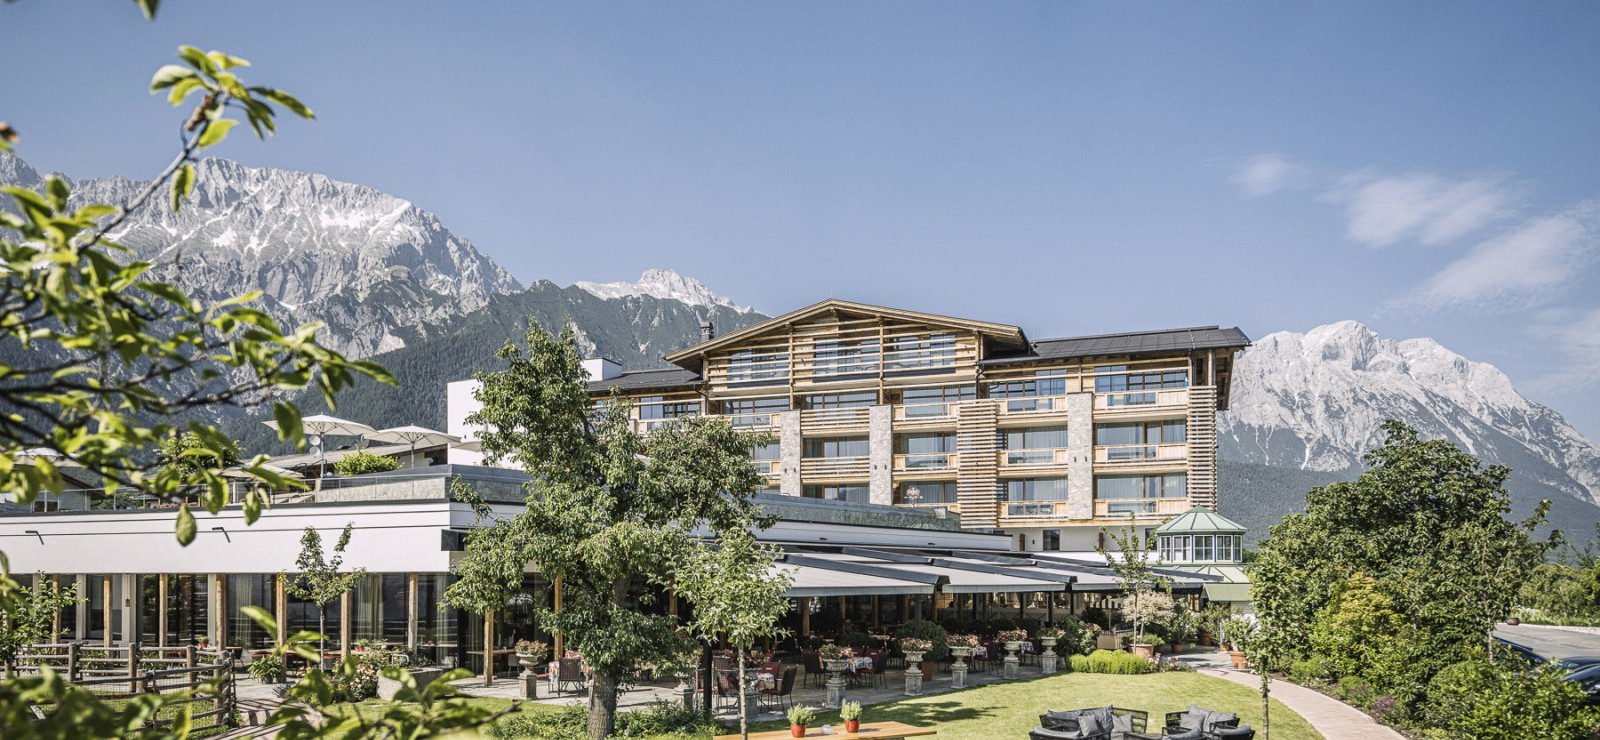 Wellnesshotels Tirol Ab 58 Bewertungen Wellness Heaven